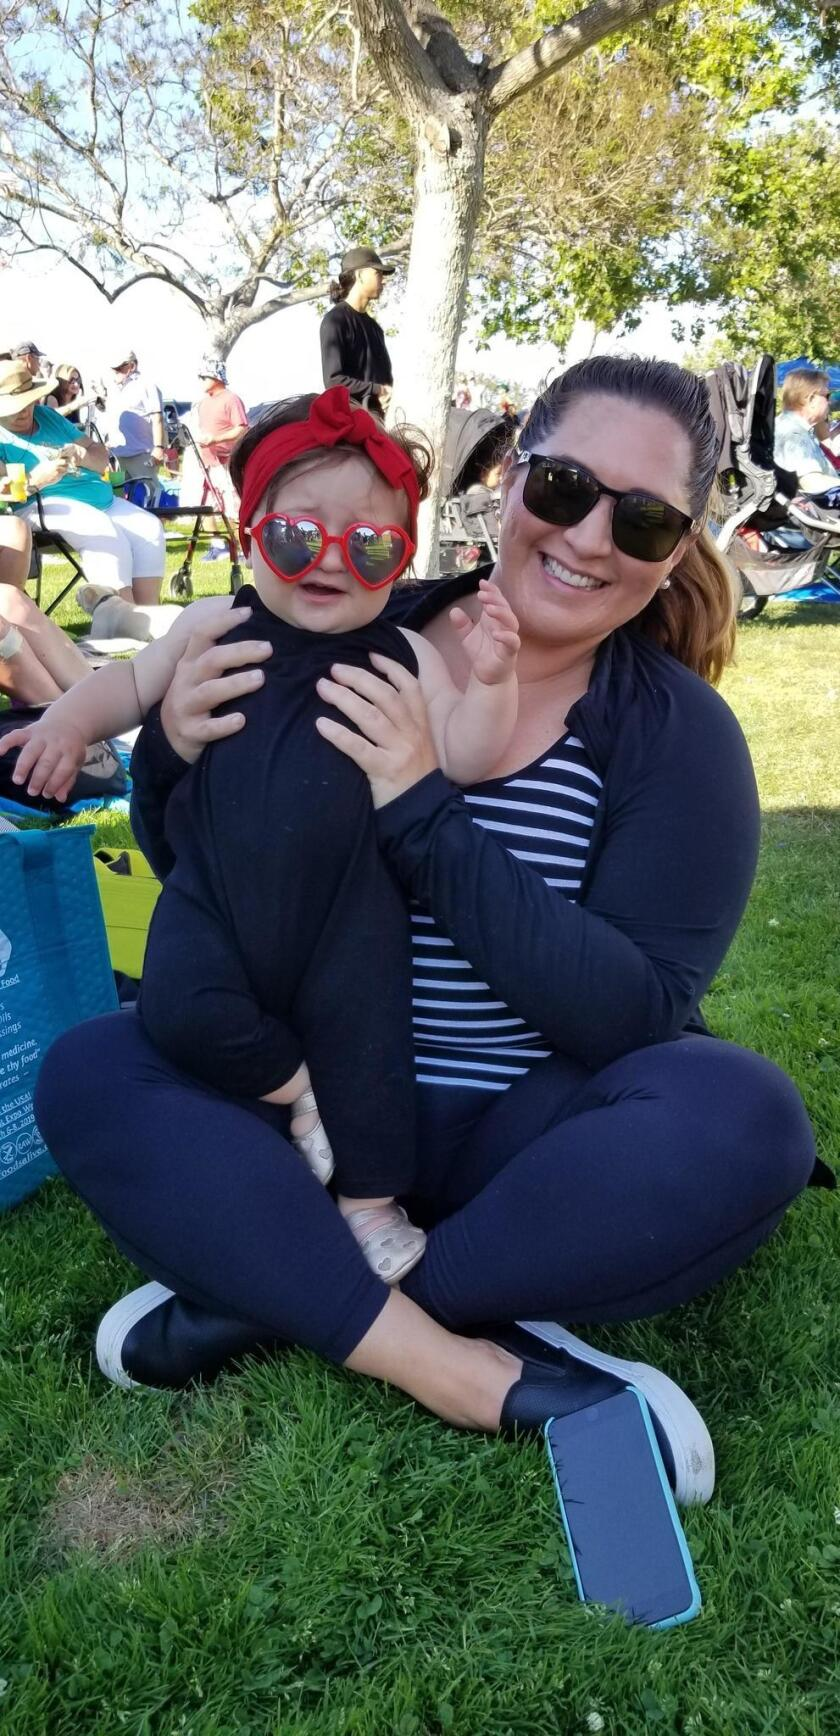 Darci Miller and her daughter Aria look fabulous together in their sunglasses.